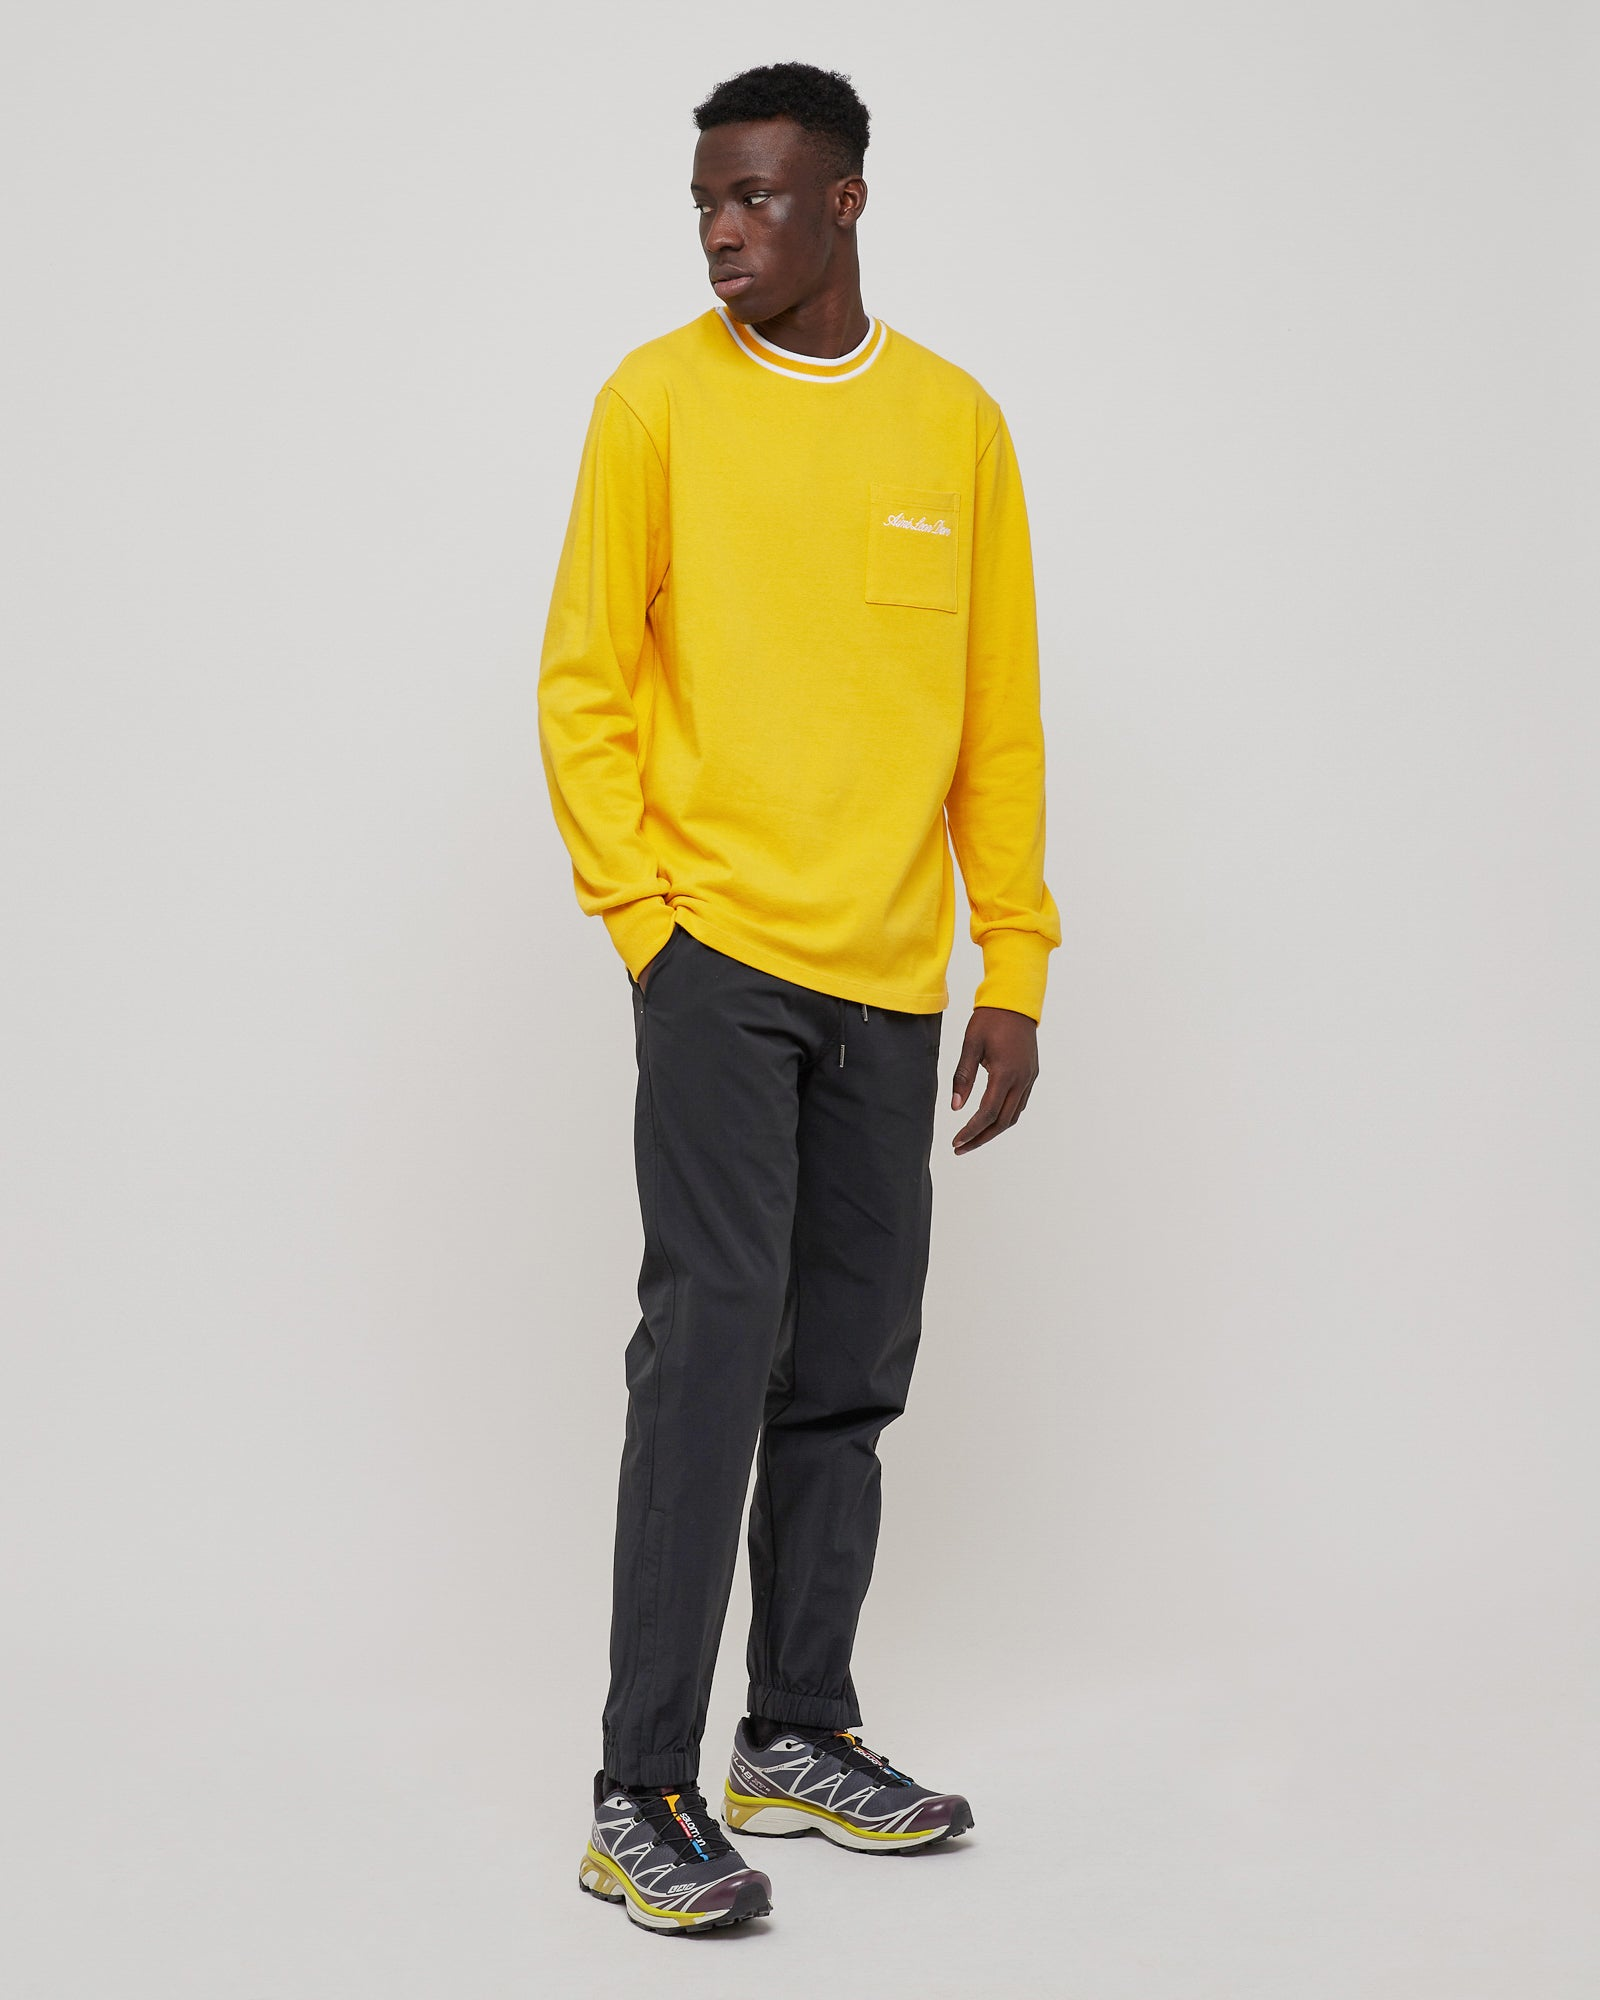 Sriped Collar L/S T-shirt in Golden Rod